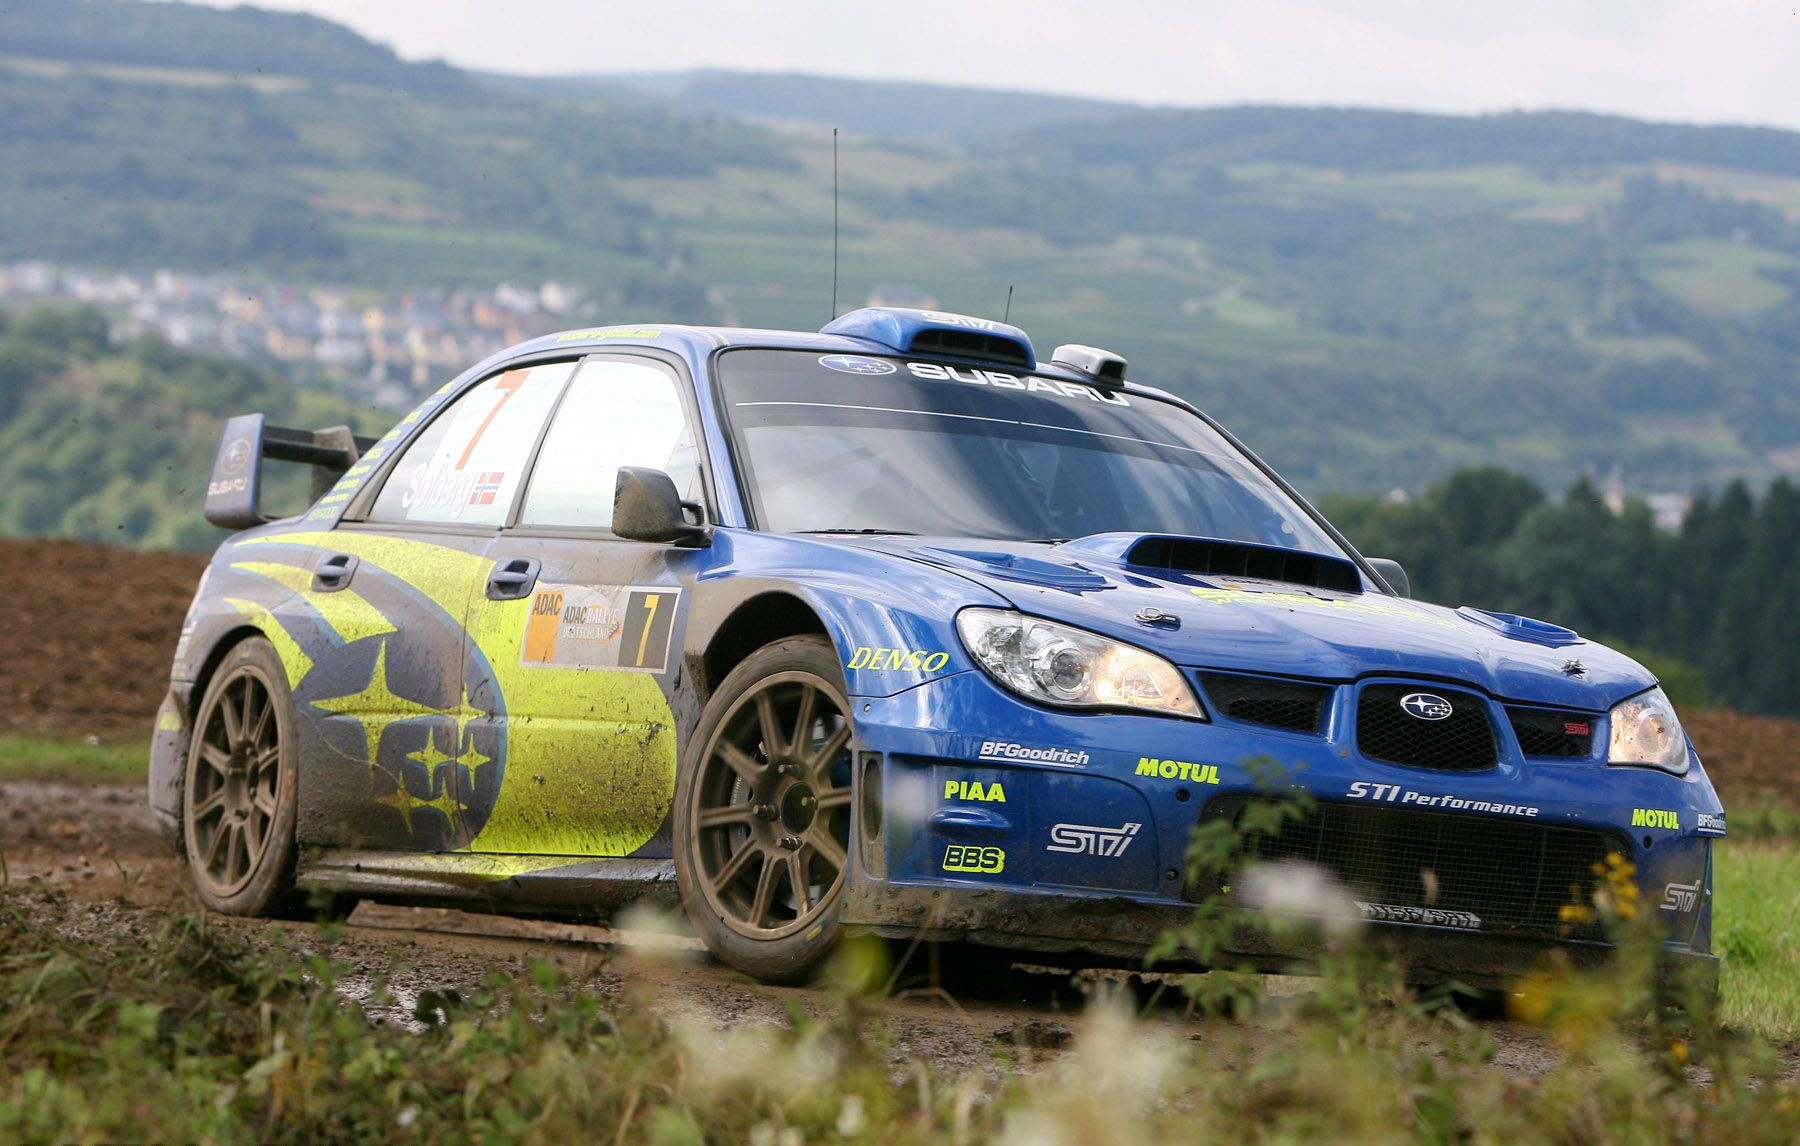 subaru wrx sti rally car - Google Search | Subaru WRC | Pinterest ...